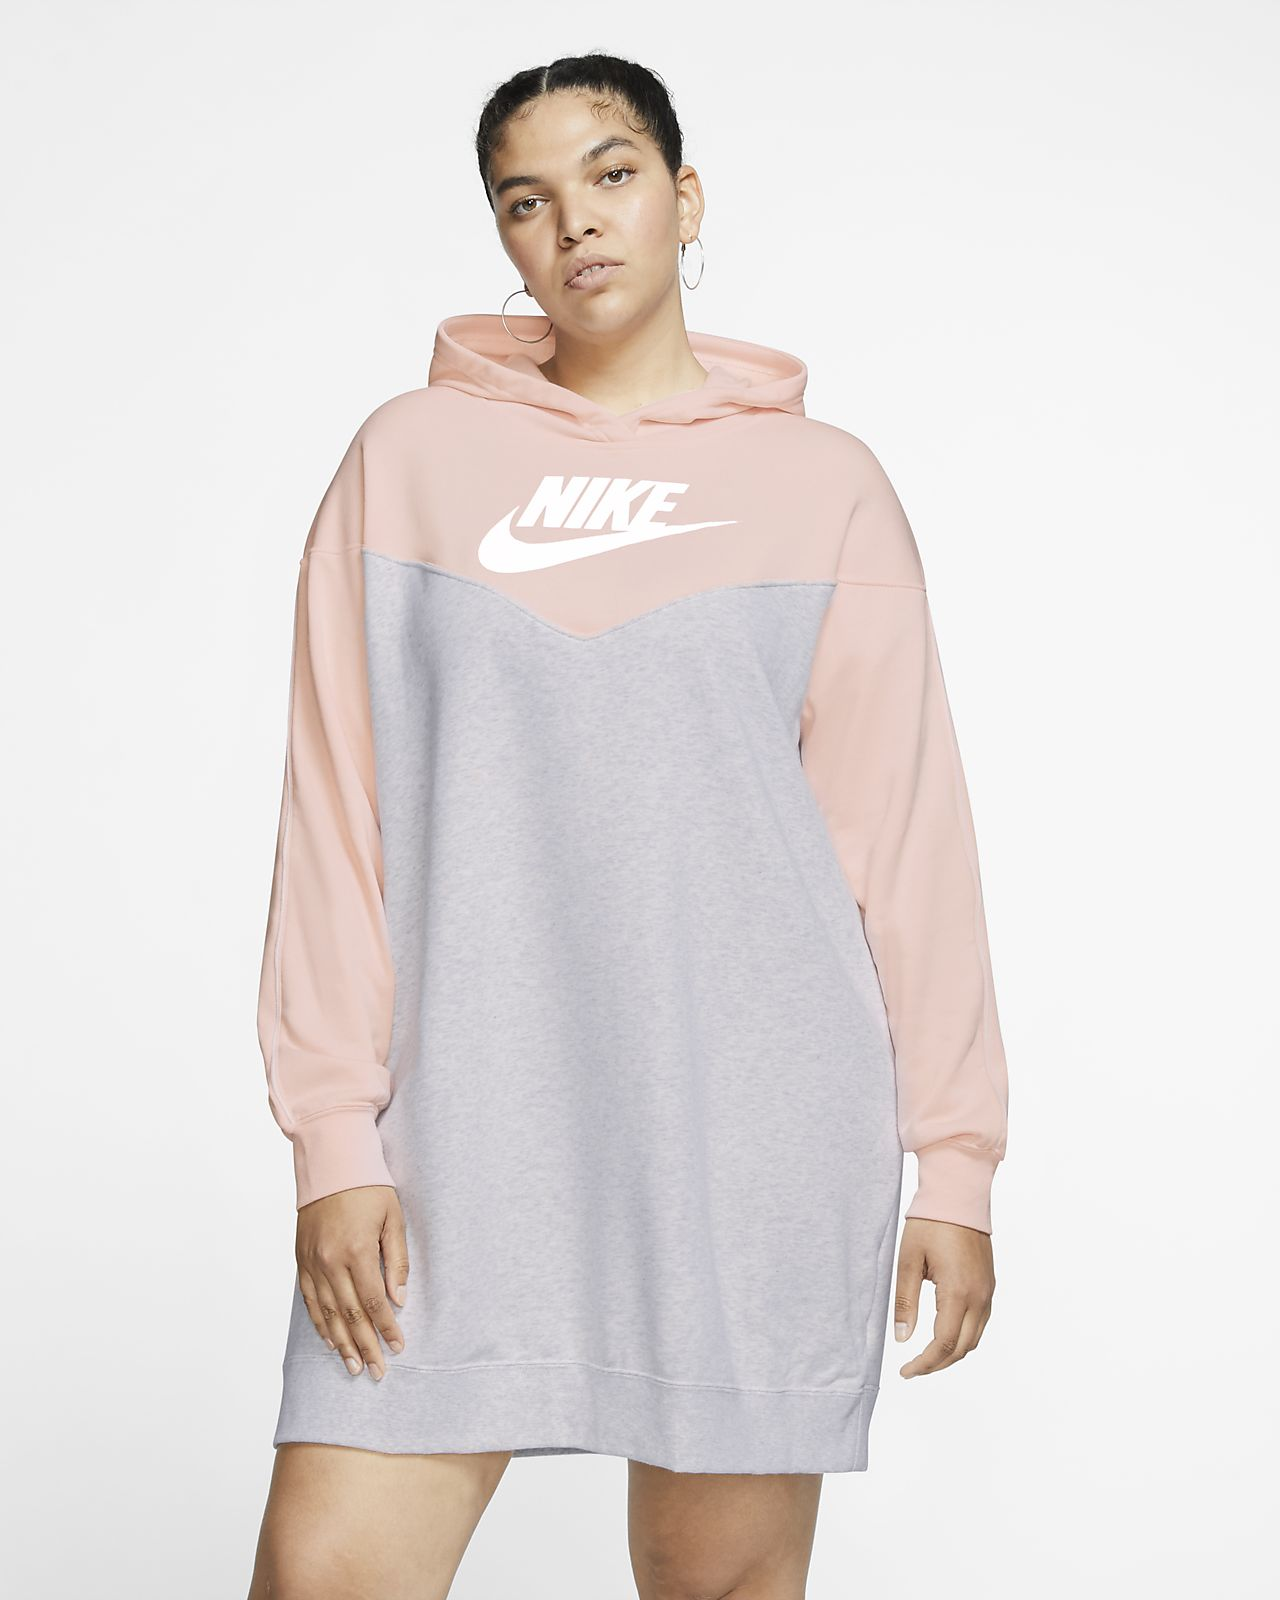 Robe à capuche Nike Sportswear Heritage pour Femme (grande taille)